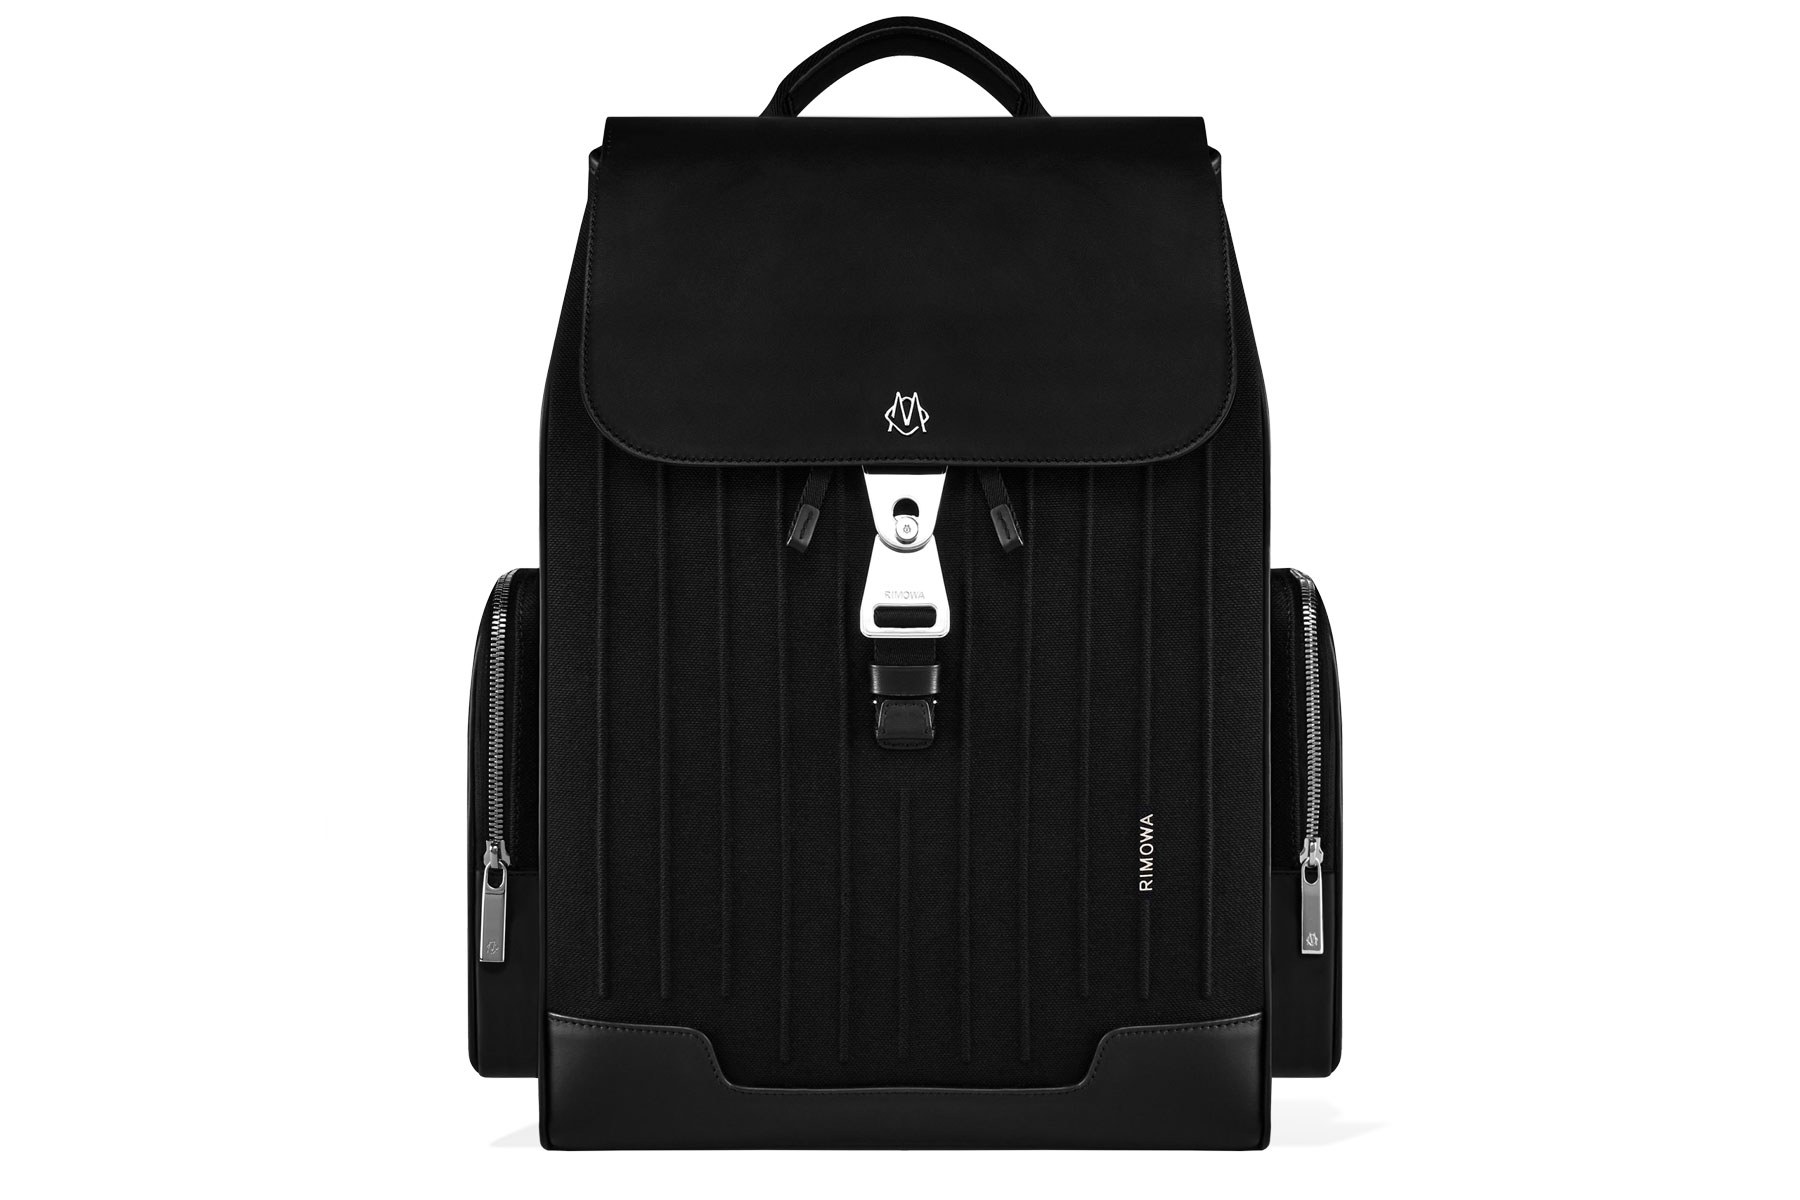 Black backpack with silver hardware